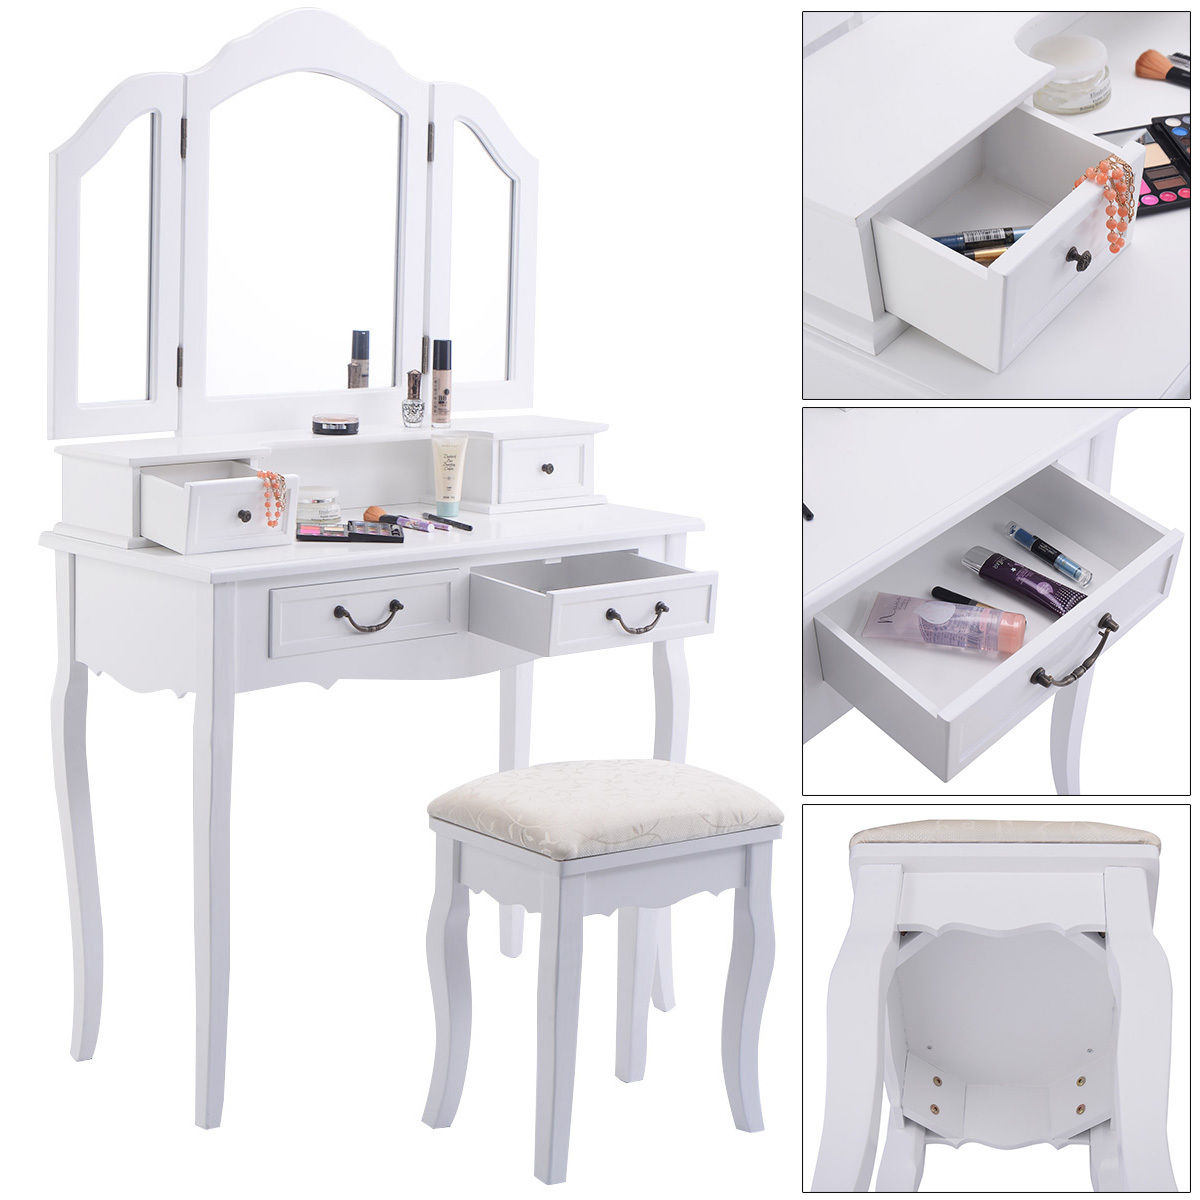 Mirrored Vanity Set for Elegant Bedroom Furniture Design: Bedroom Vanity Table With Drawers | Mirrored Vanity Set | Cheap Bedroom Vanity Sets